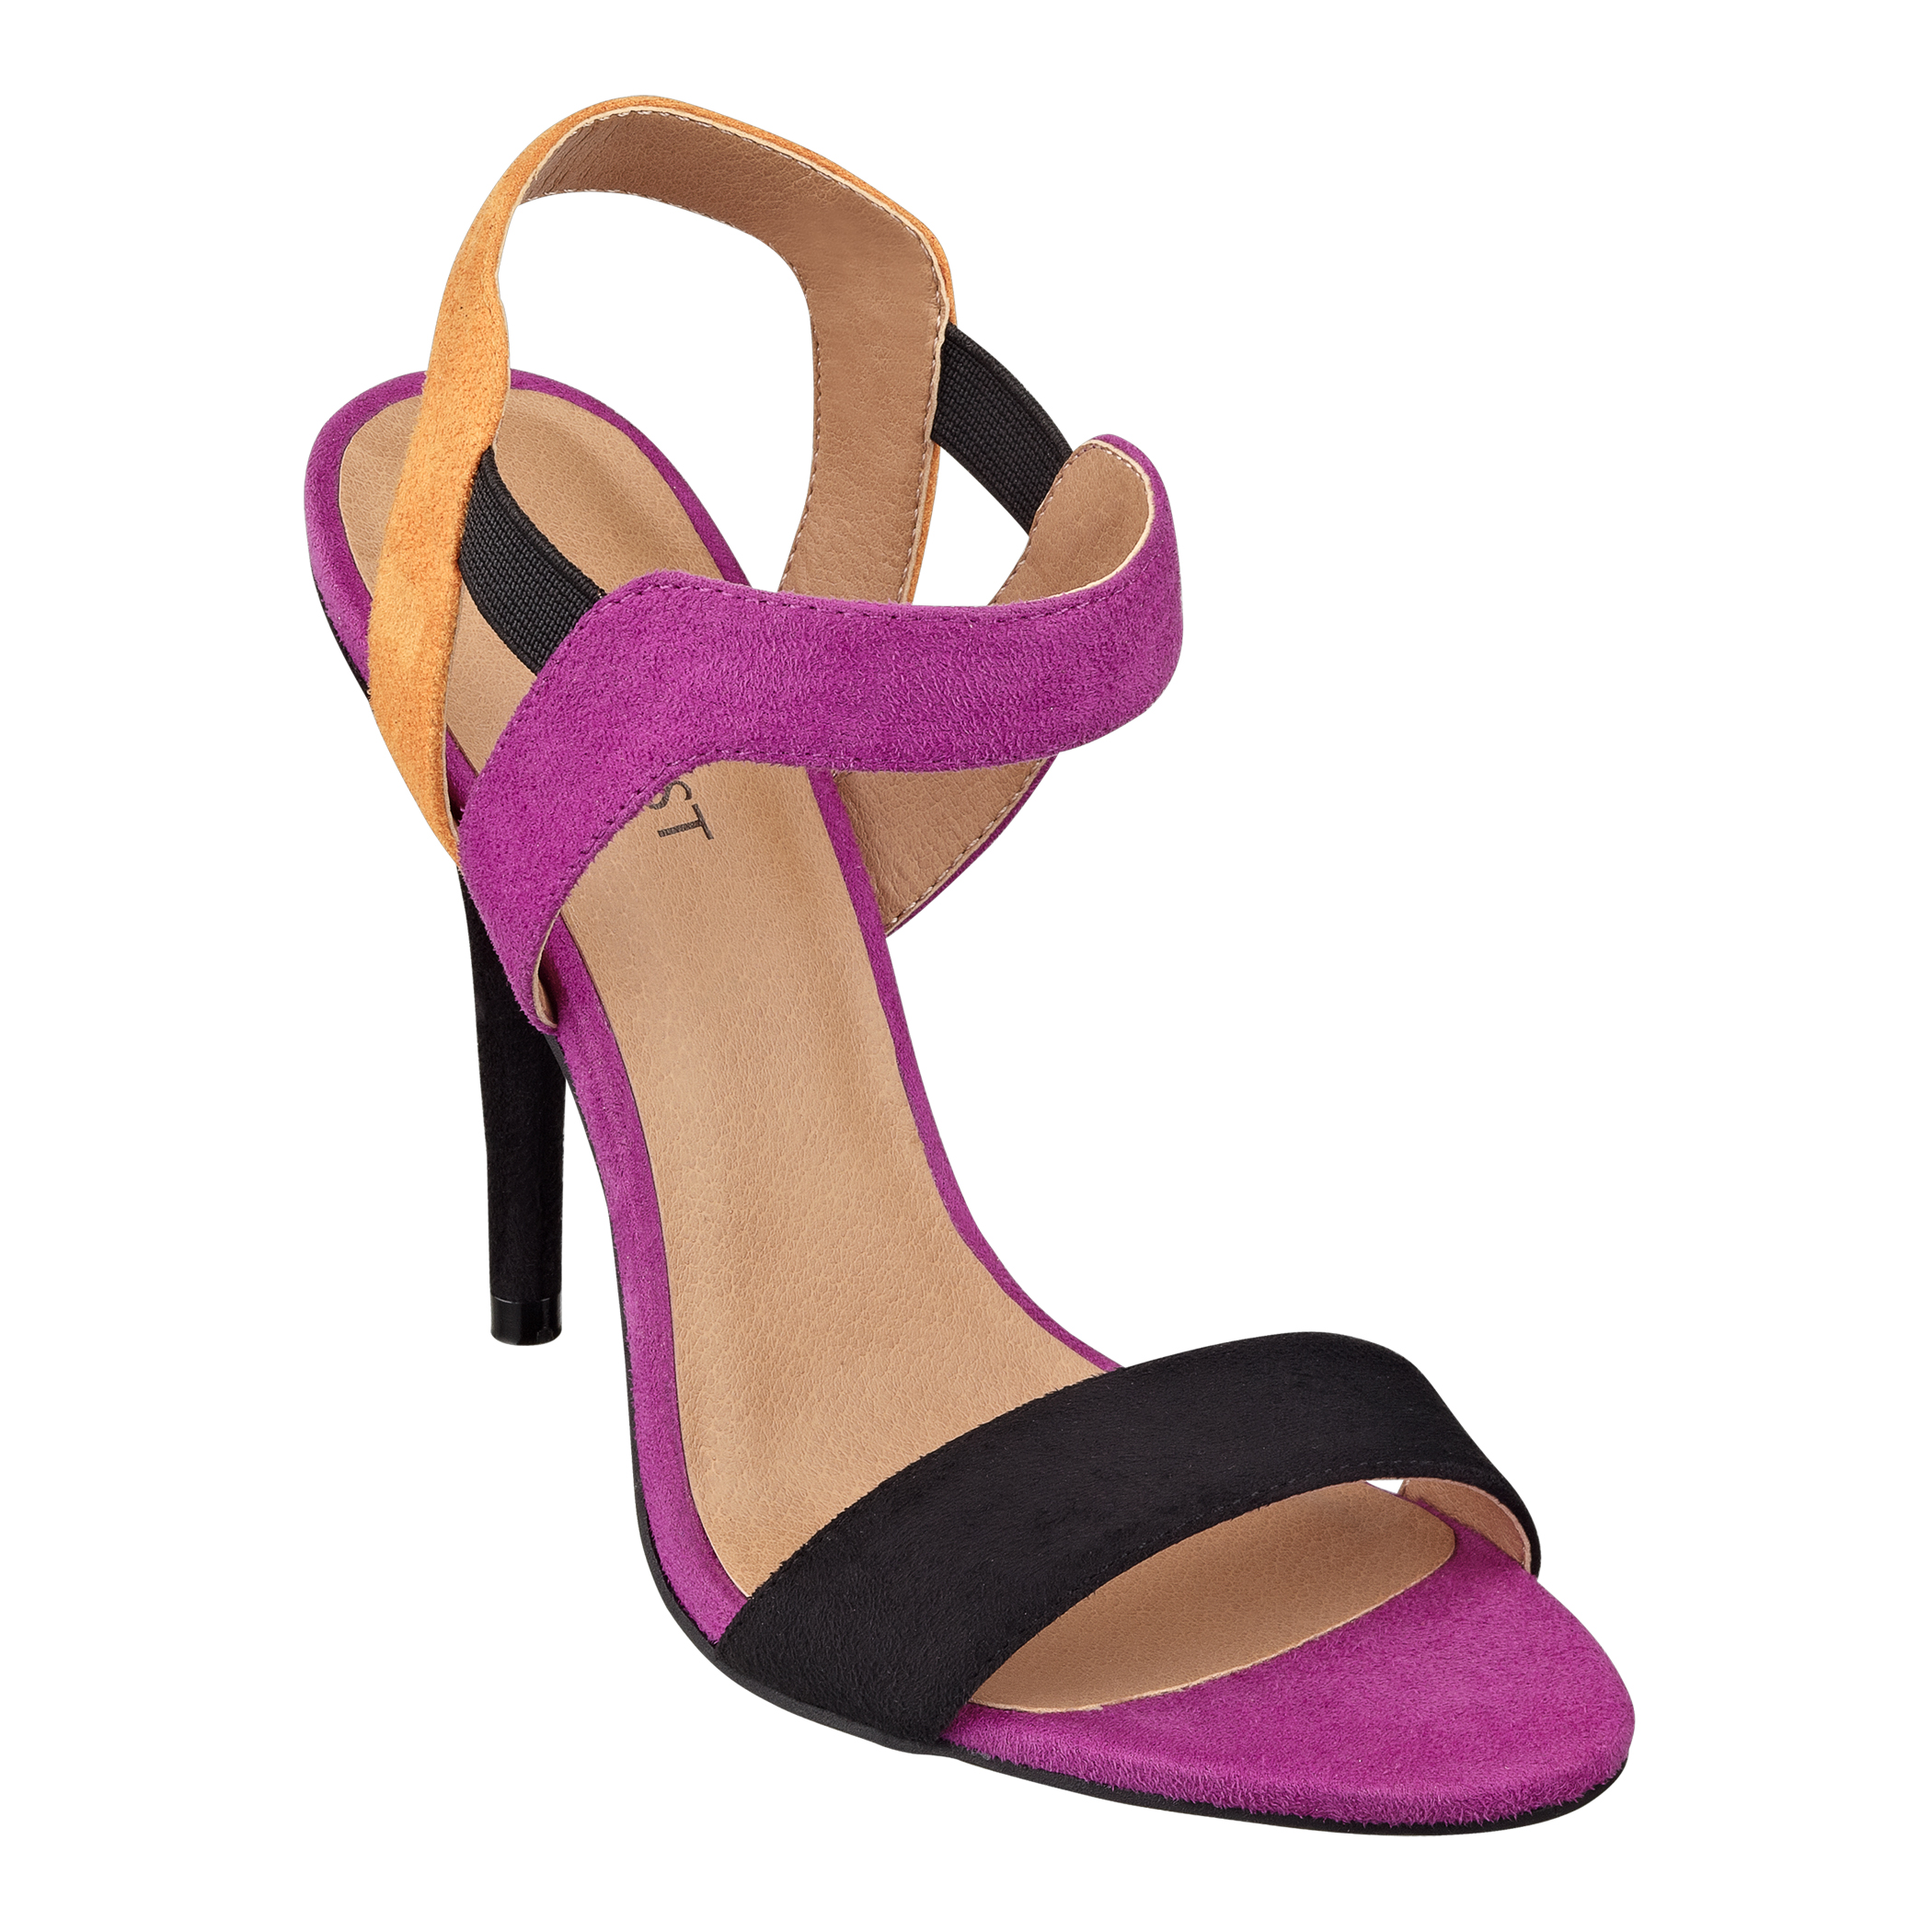 Latest Fashion of Stiletto & Heels Collection for women by Nine West (27)